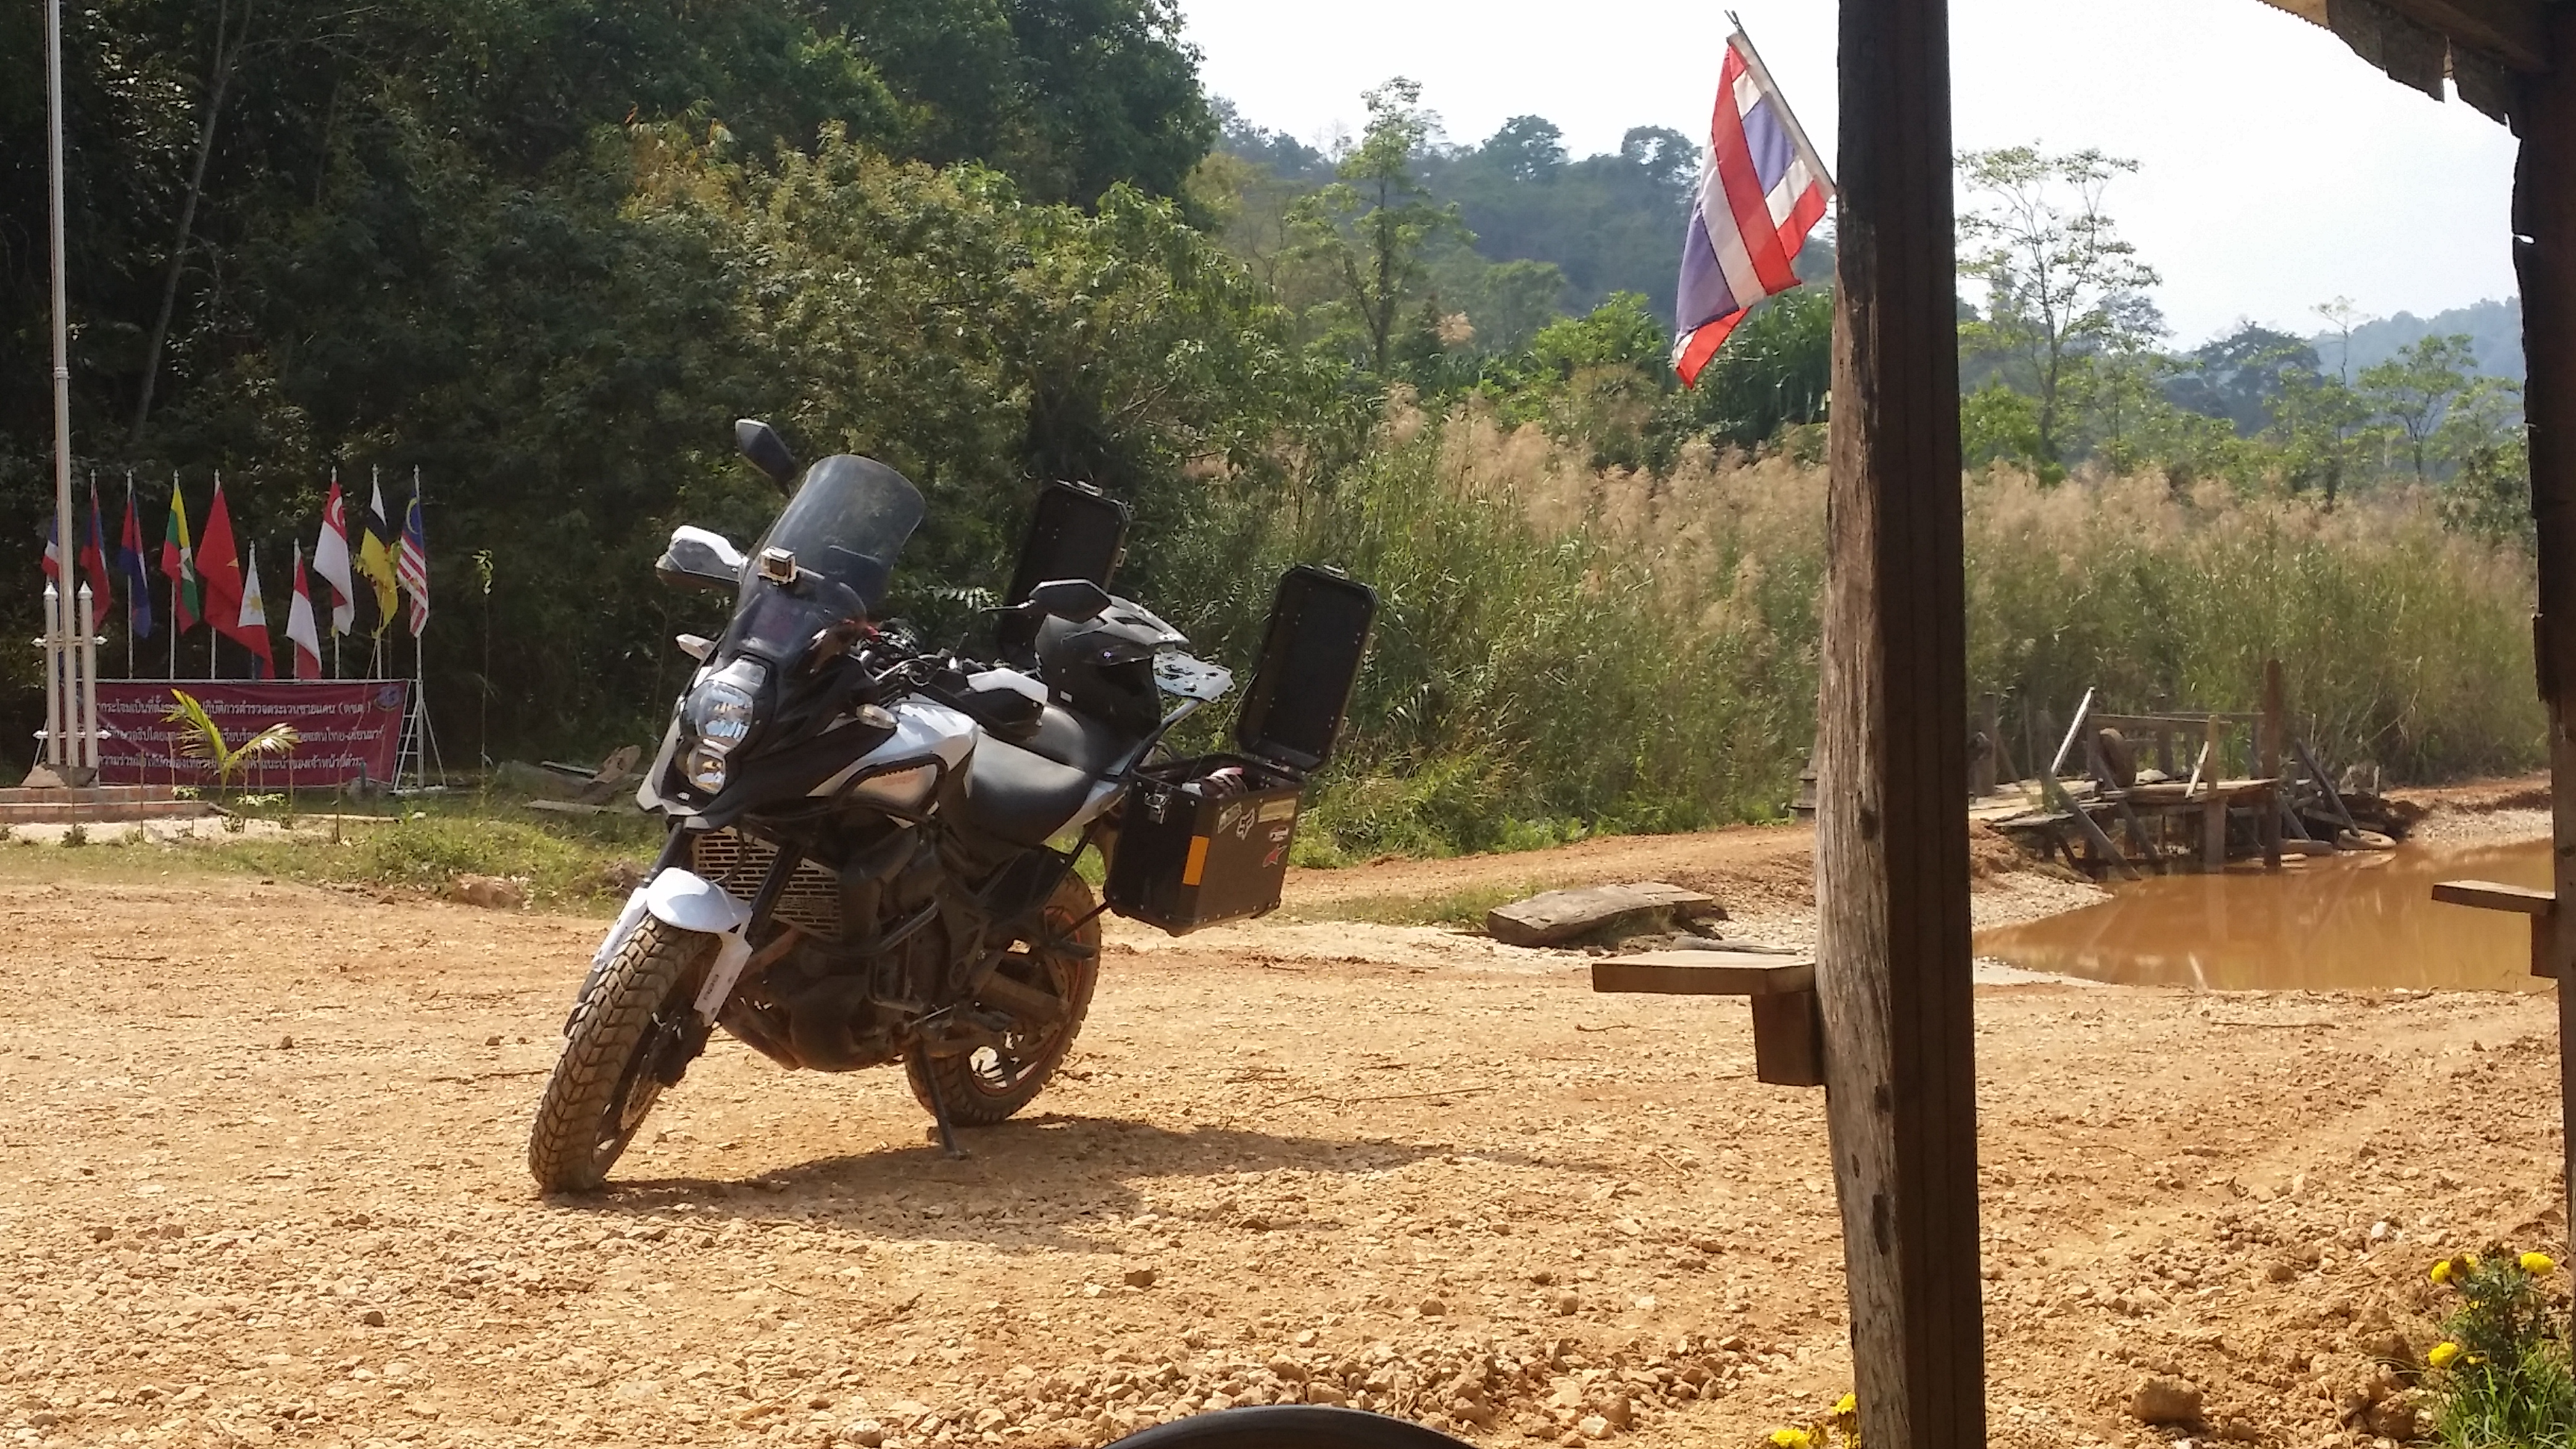 Khao Krajom Mountain Suan Pheung district Kawasaki Versys